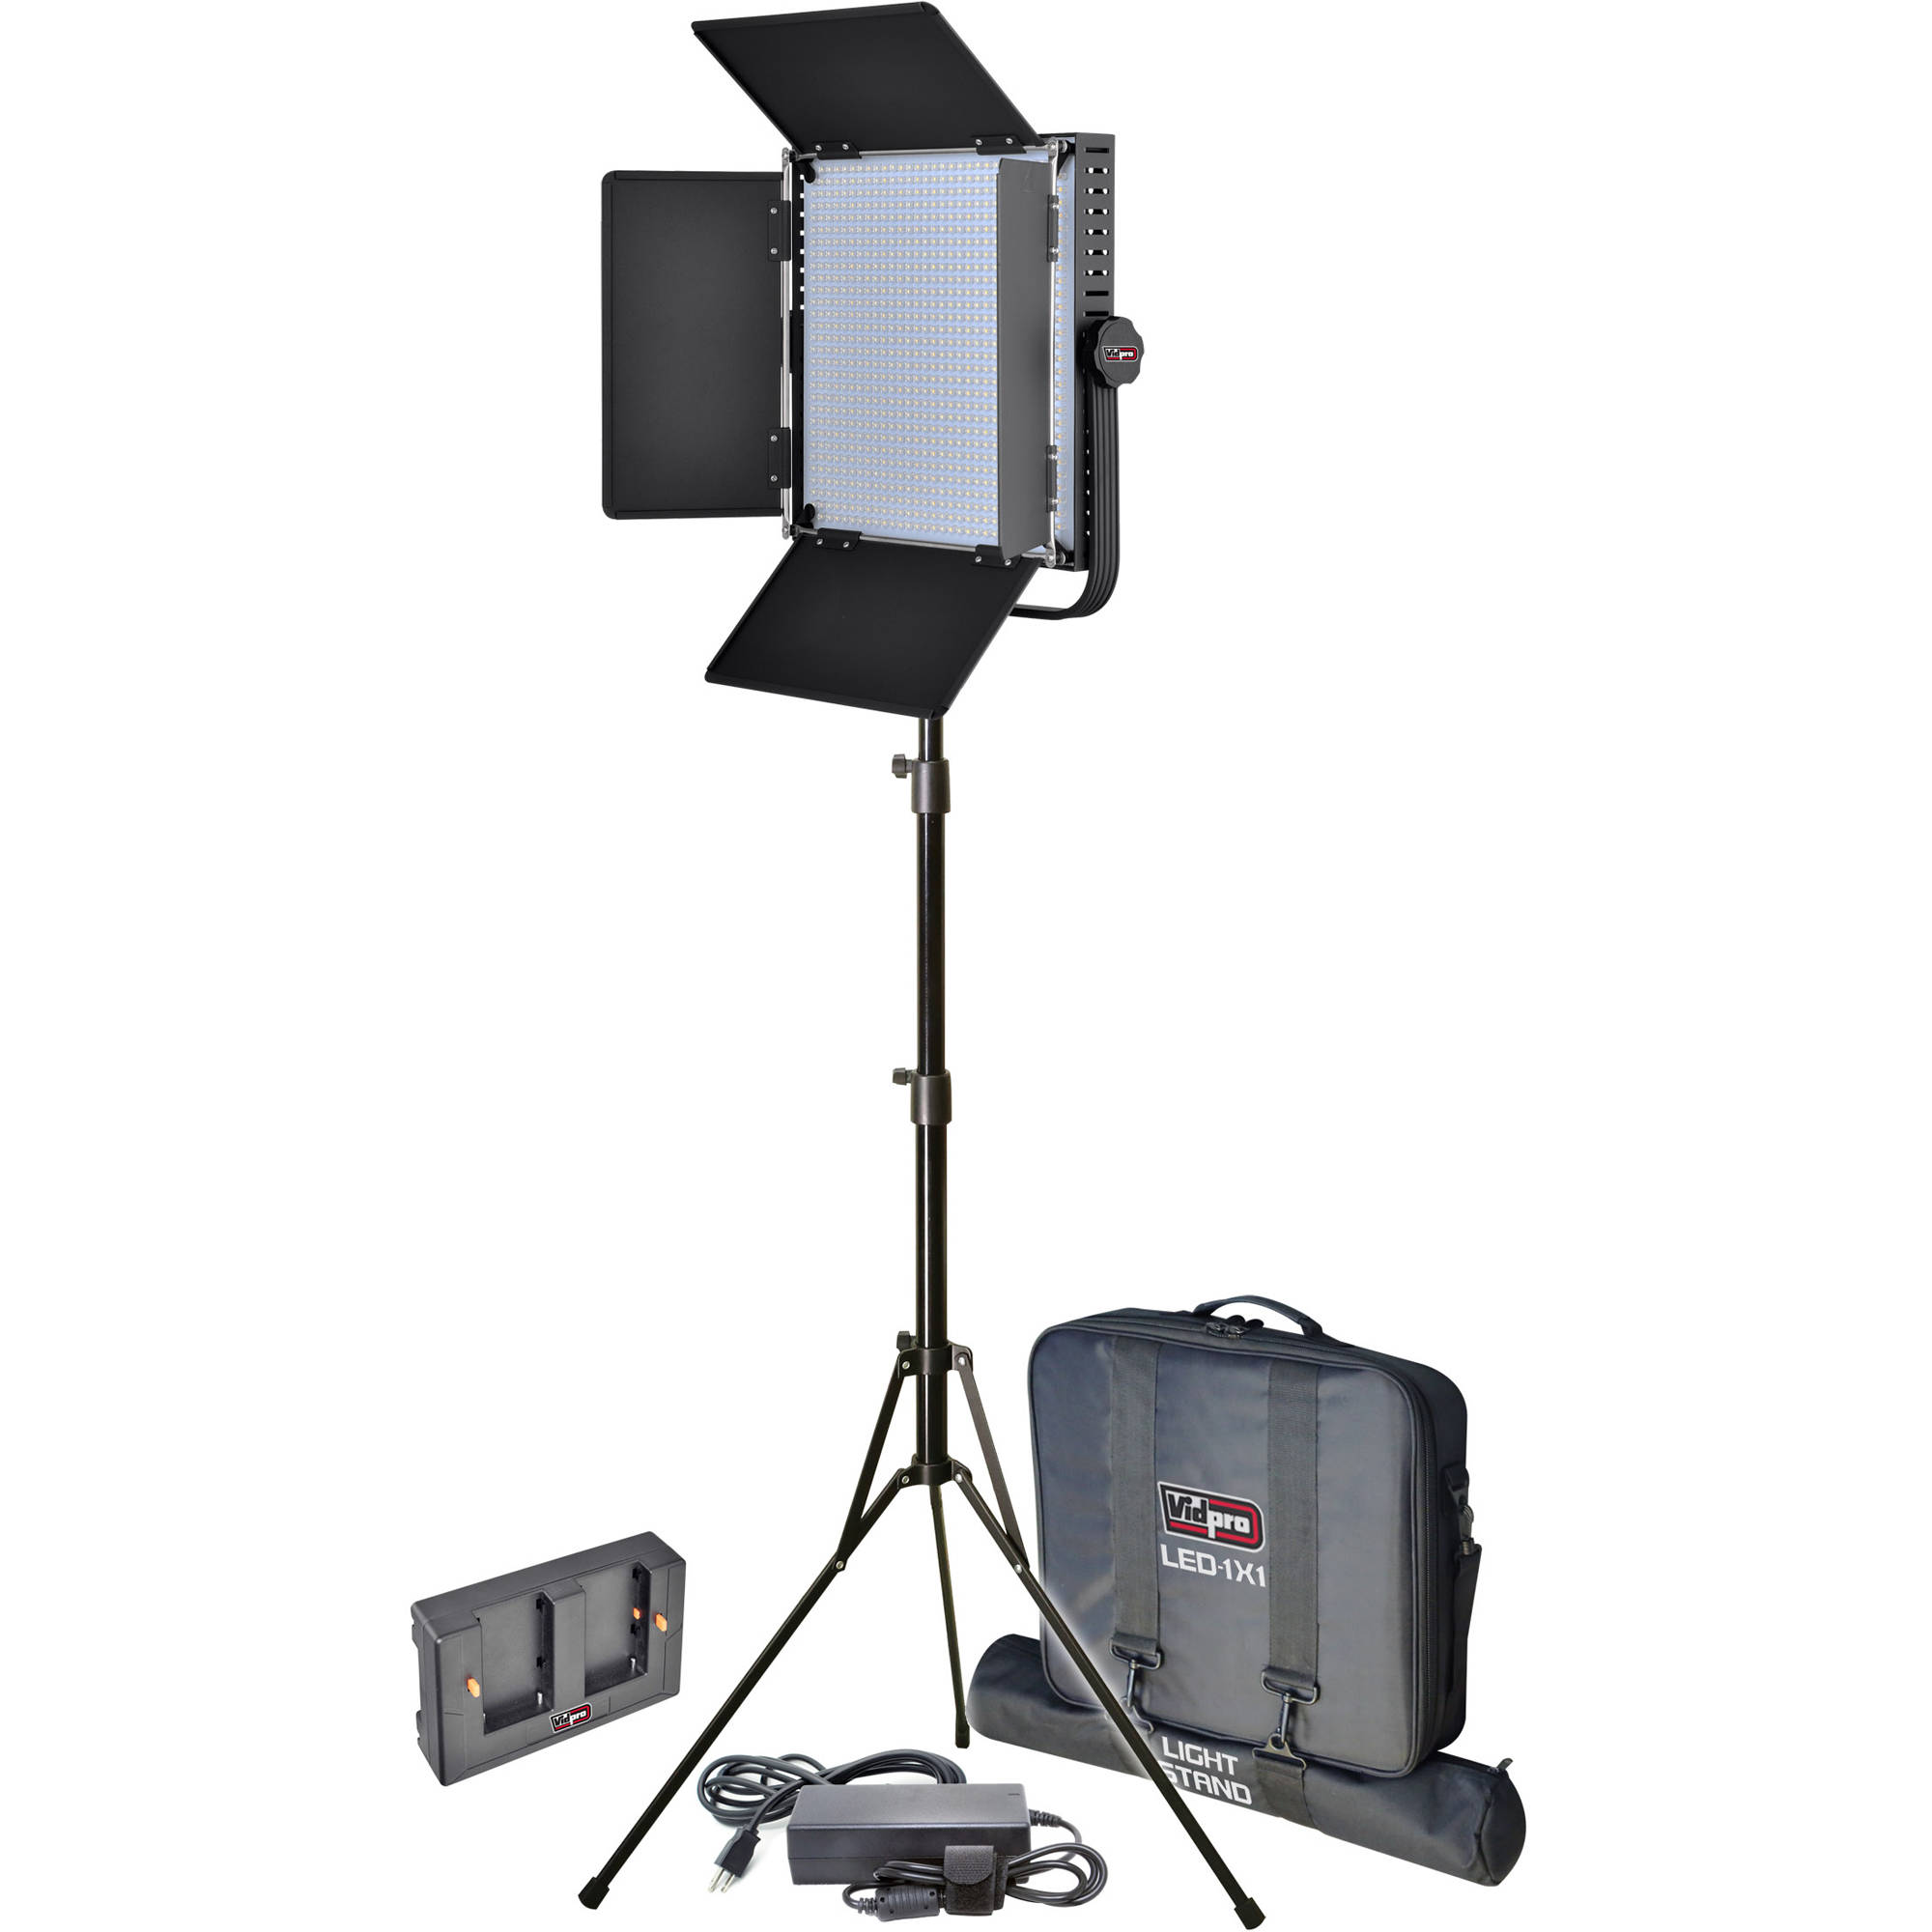 Vidpro led 1x1 pro studio light on audio adapter kit